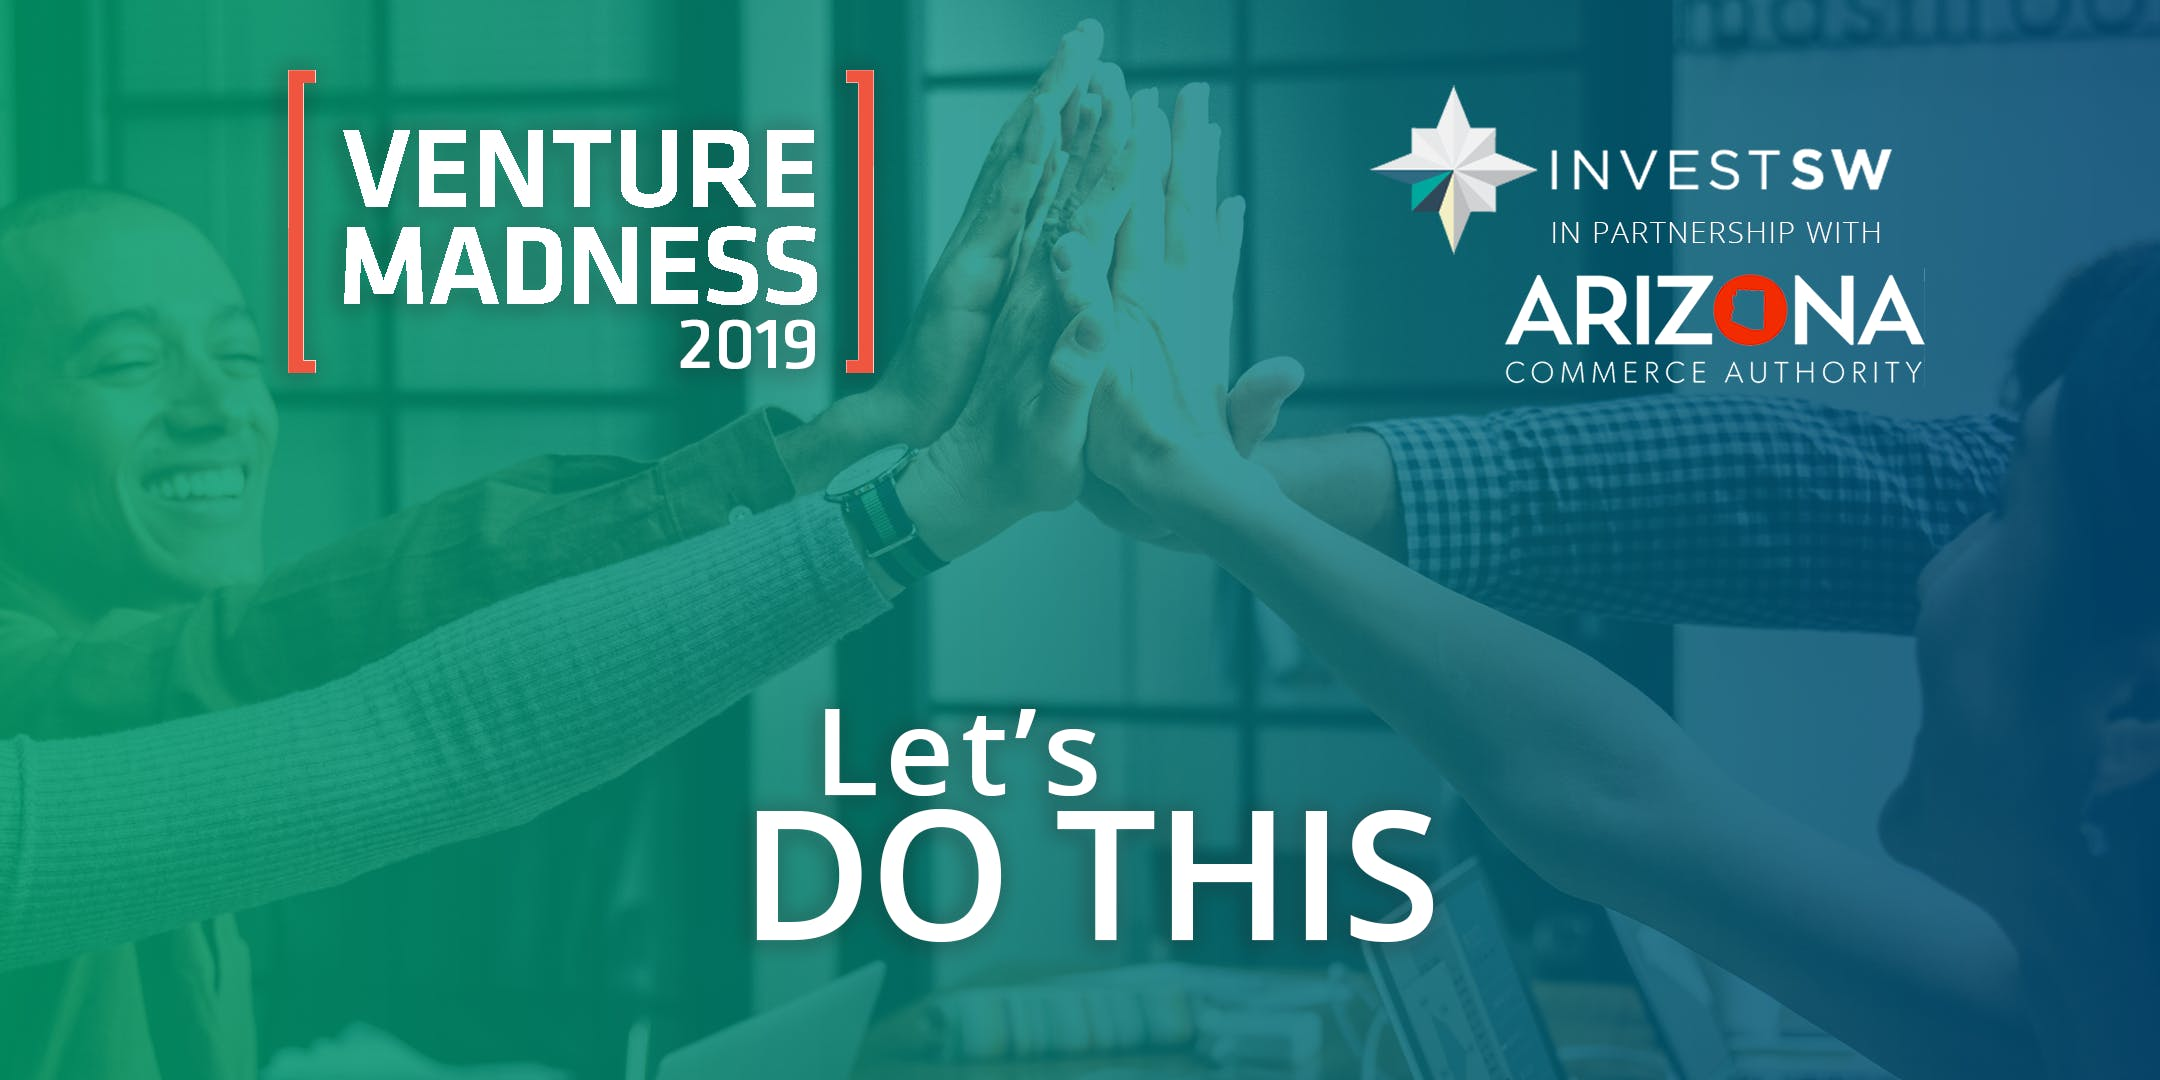 Venture Madness Conference presented by Invest Southwest, in partnership with Arizona Commerce Authority